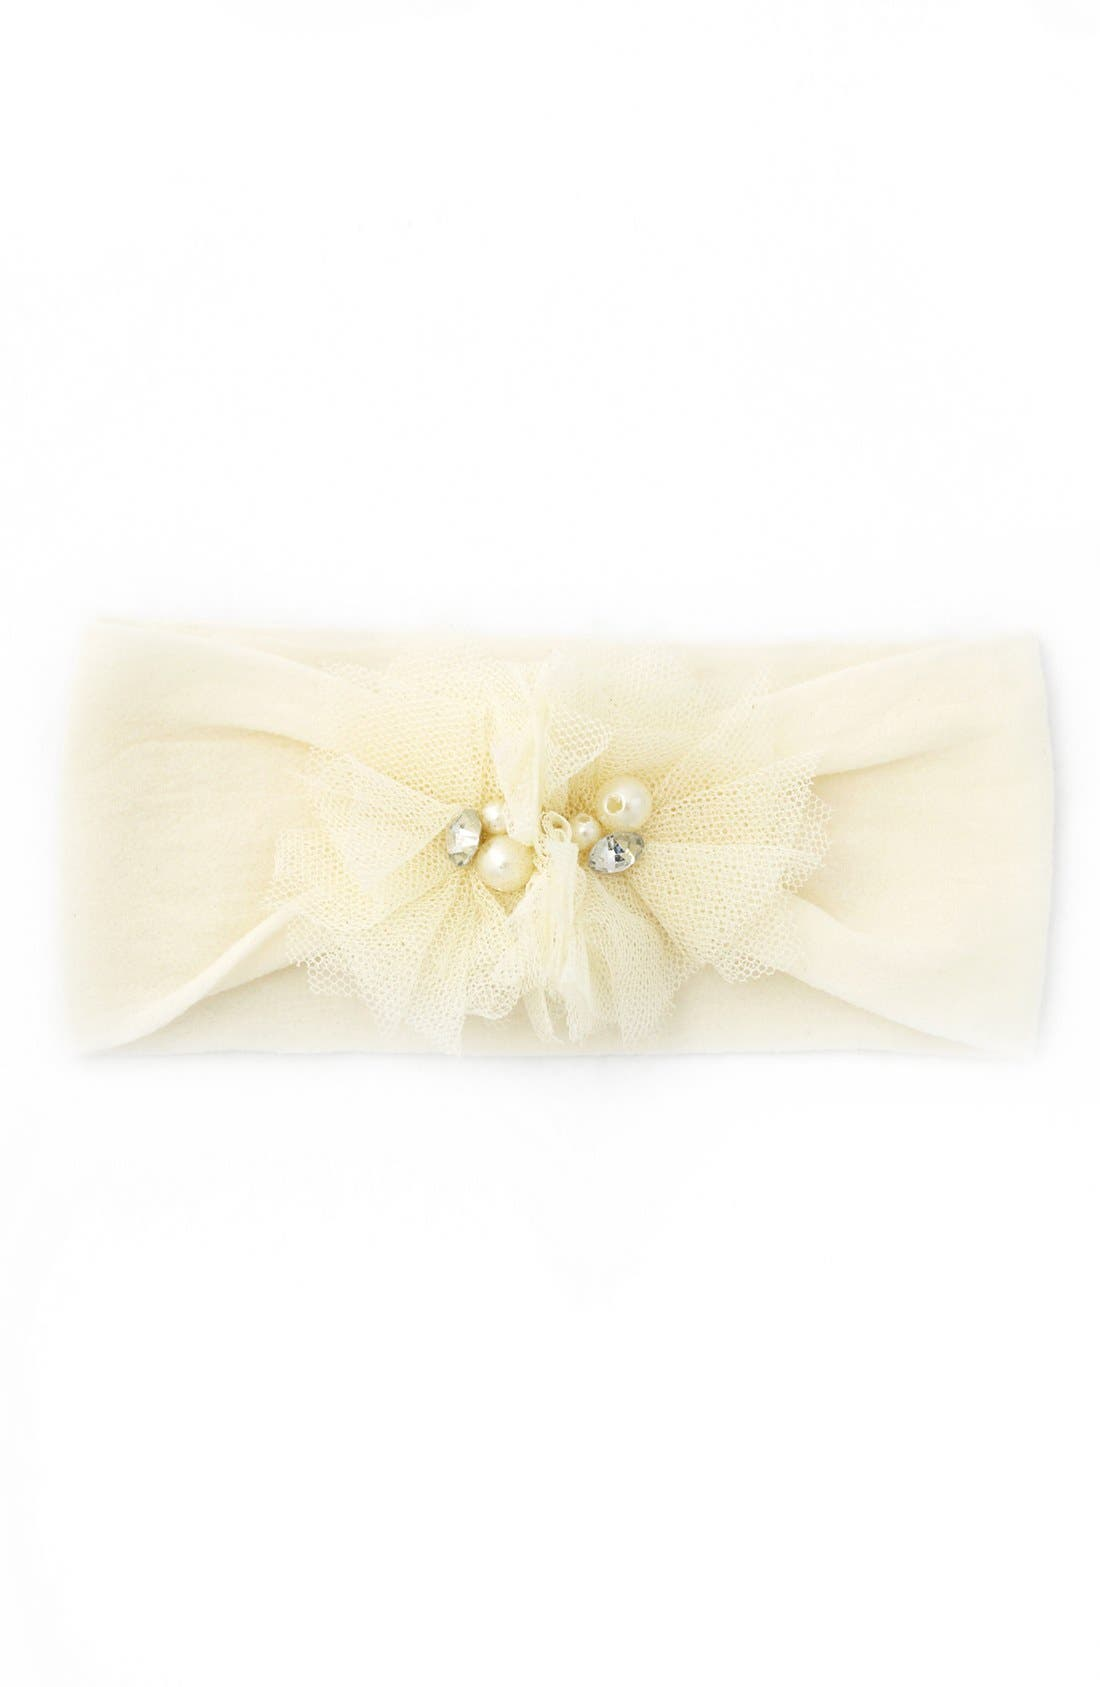 Alternate Image 1 Selected - Baby Bling Headband (Baby Girls)